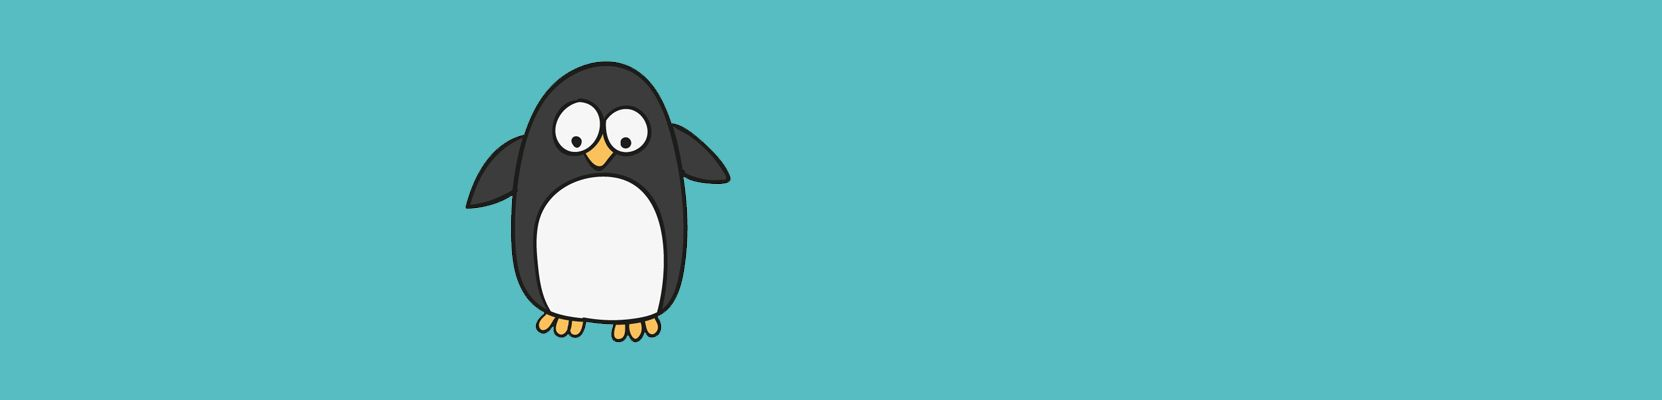 The Google Penguin 4.0 update – SEO news